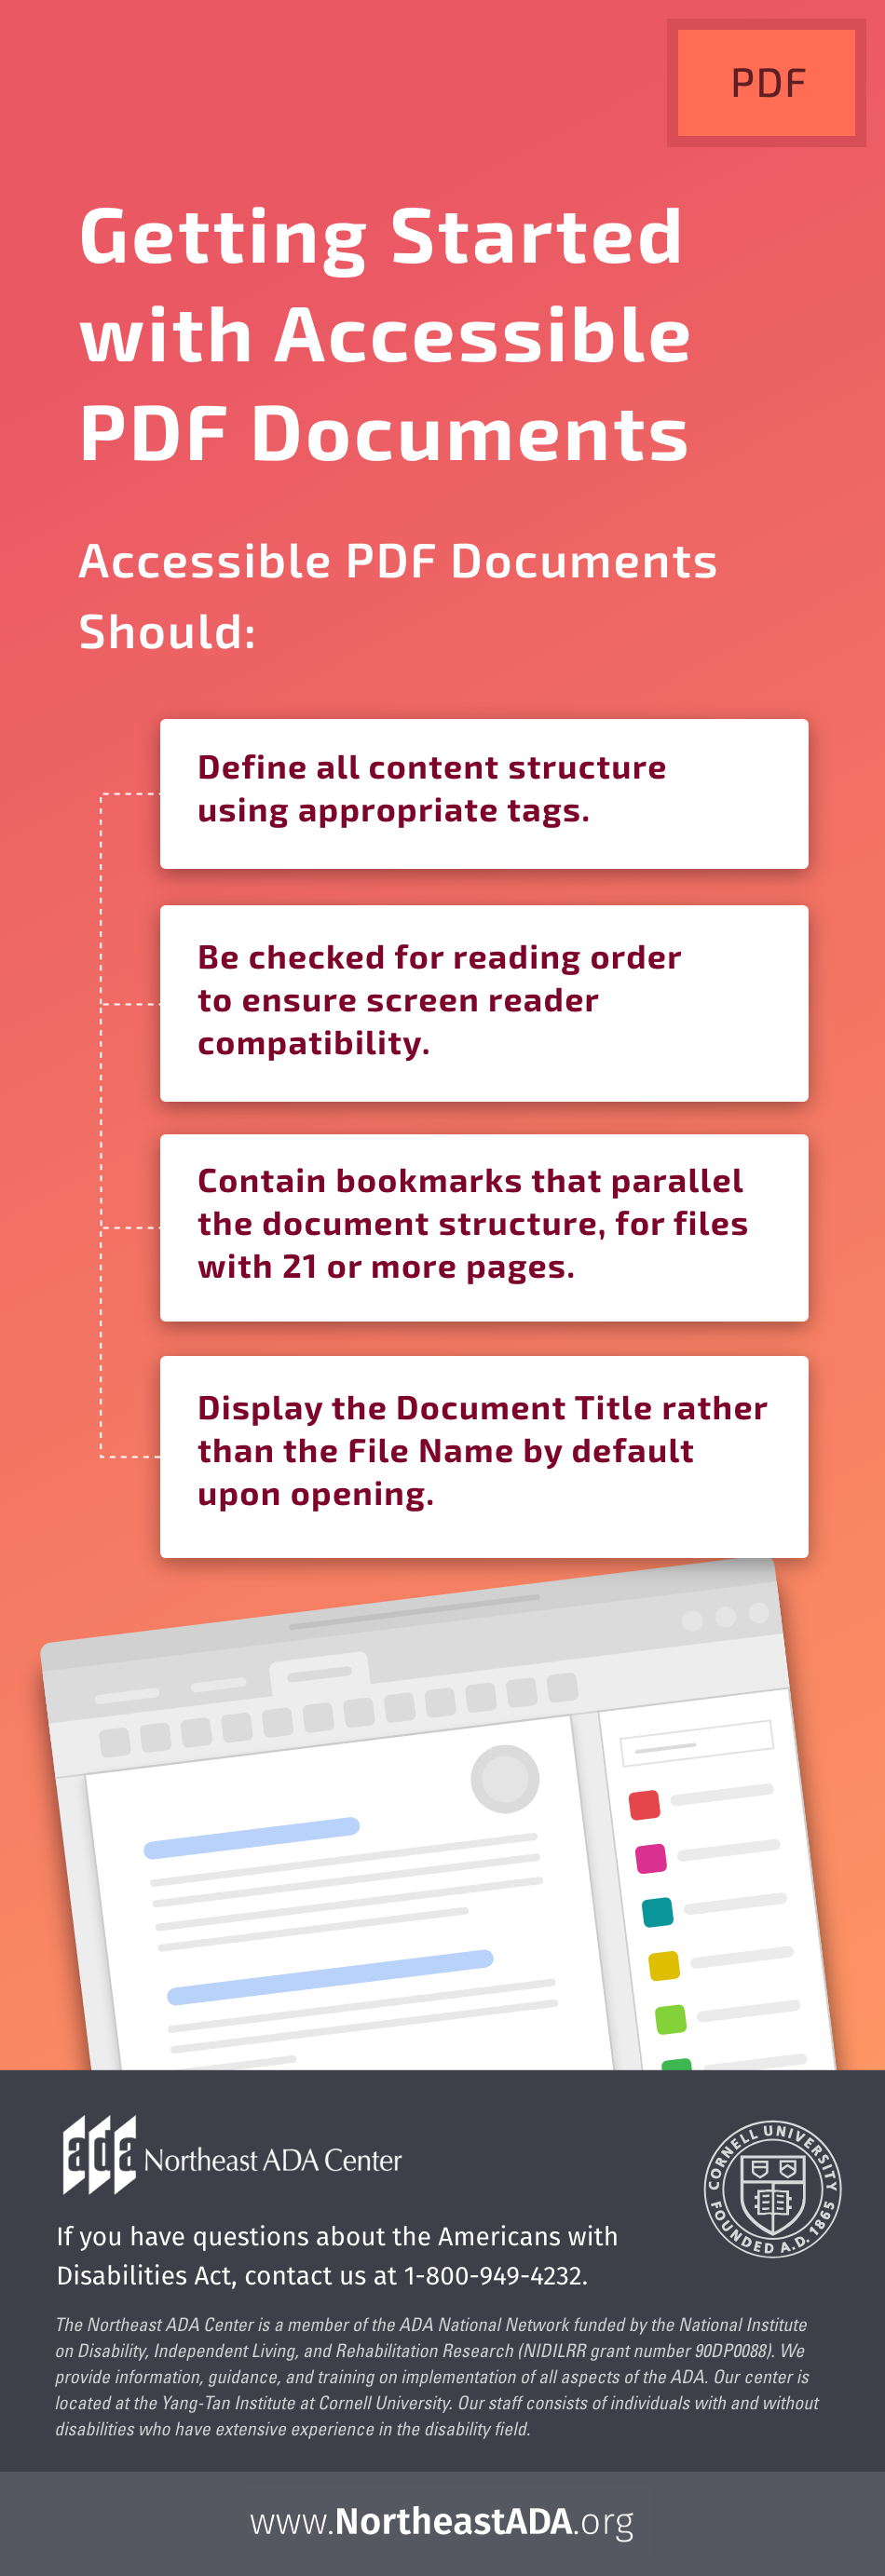 Infographic titled 'Getting Started with Accessible PDF Documents' featuring an image of Adobe Acrobat and text boxes with tips: Accessible PDF Documents Should: Define all content structure using appropriate tags. Be checked for reading order to ensure screen reader compatibility. Contain bookmarks that parallel the document structure, for files with 21 or more pages. Display the Document Title rather than the File Name by default upon opening. If you have questions about the Americans with Disabilities Act, contact us at 1-800-949-4232.